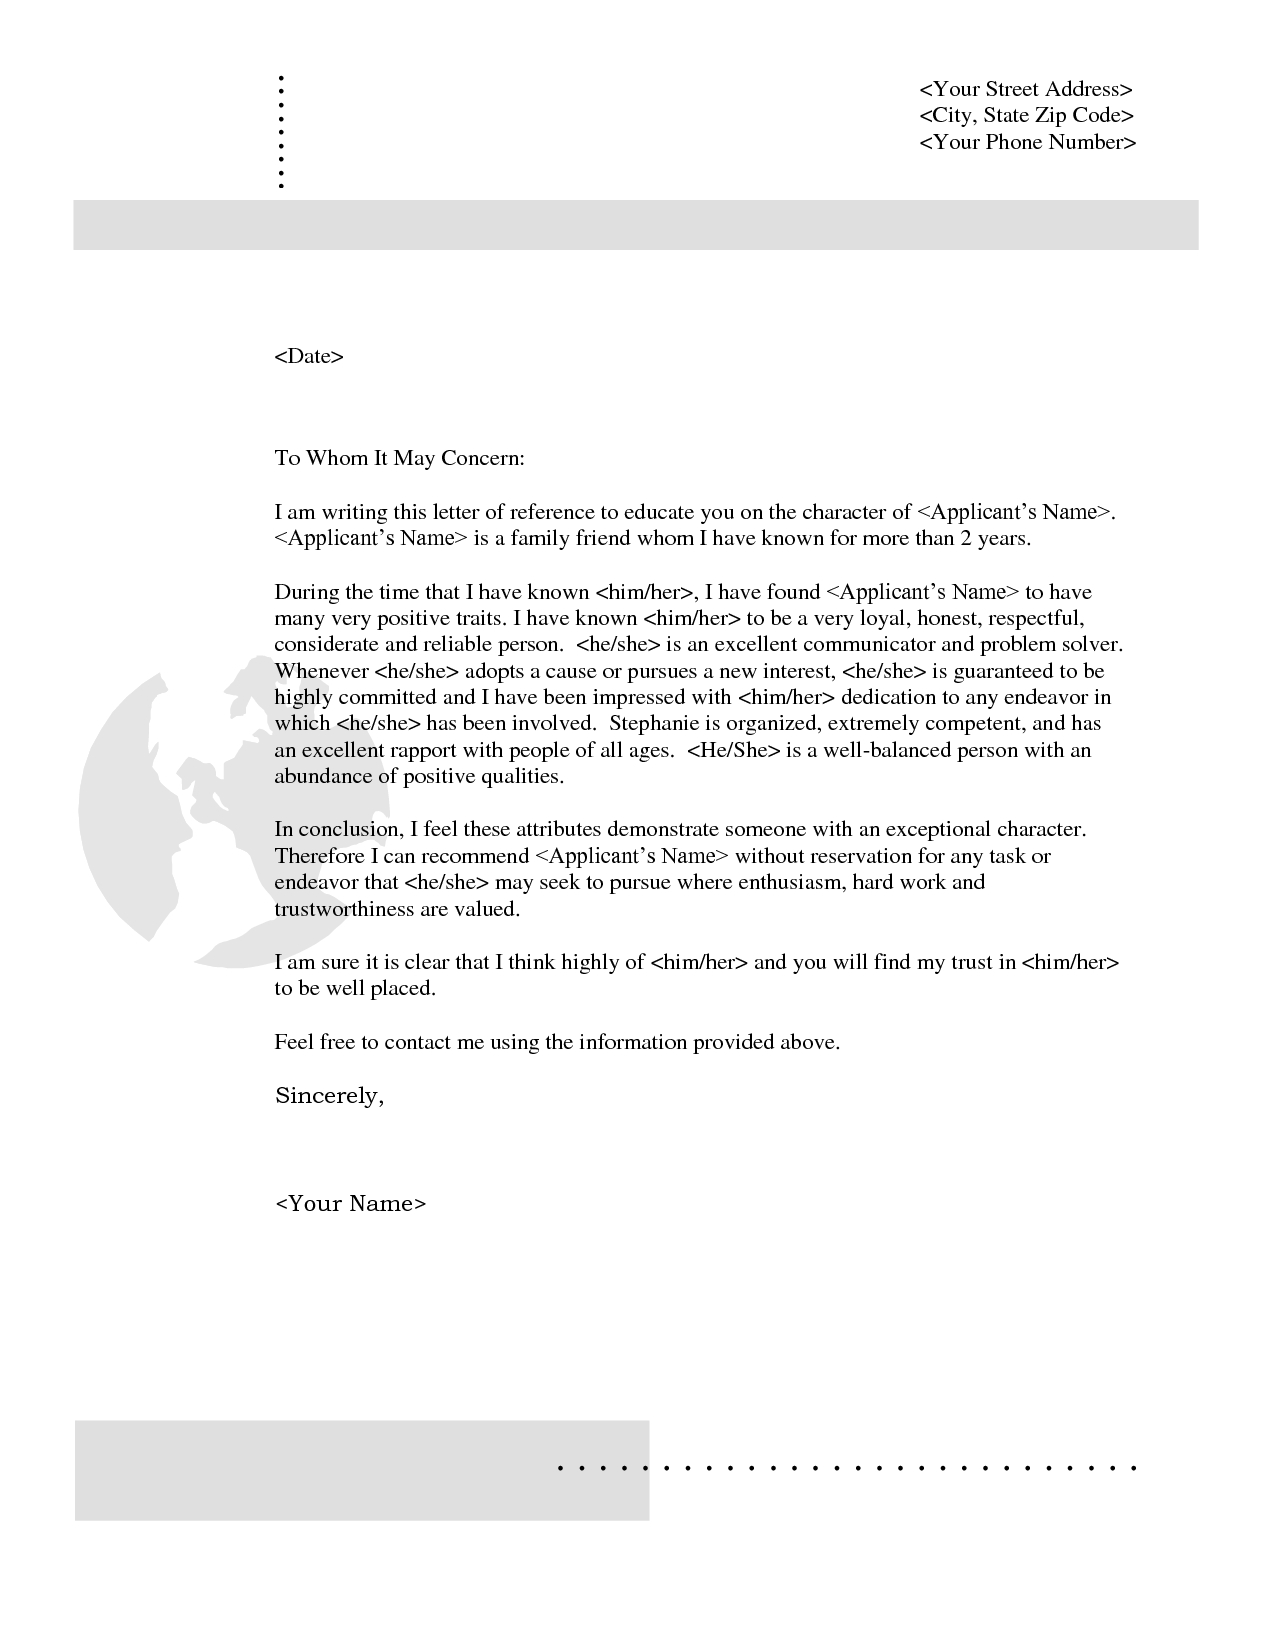 Free Rental Reference Letter Template - Rental Reference Letter From Friend Pdf format